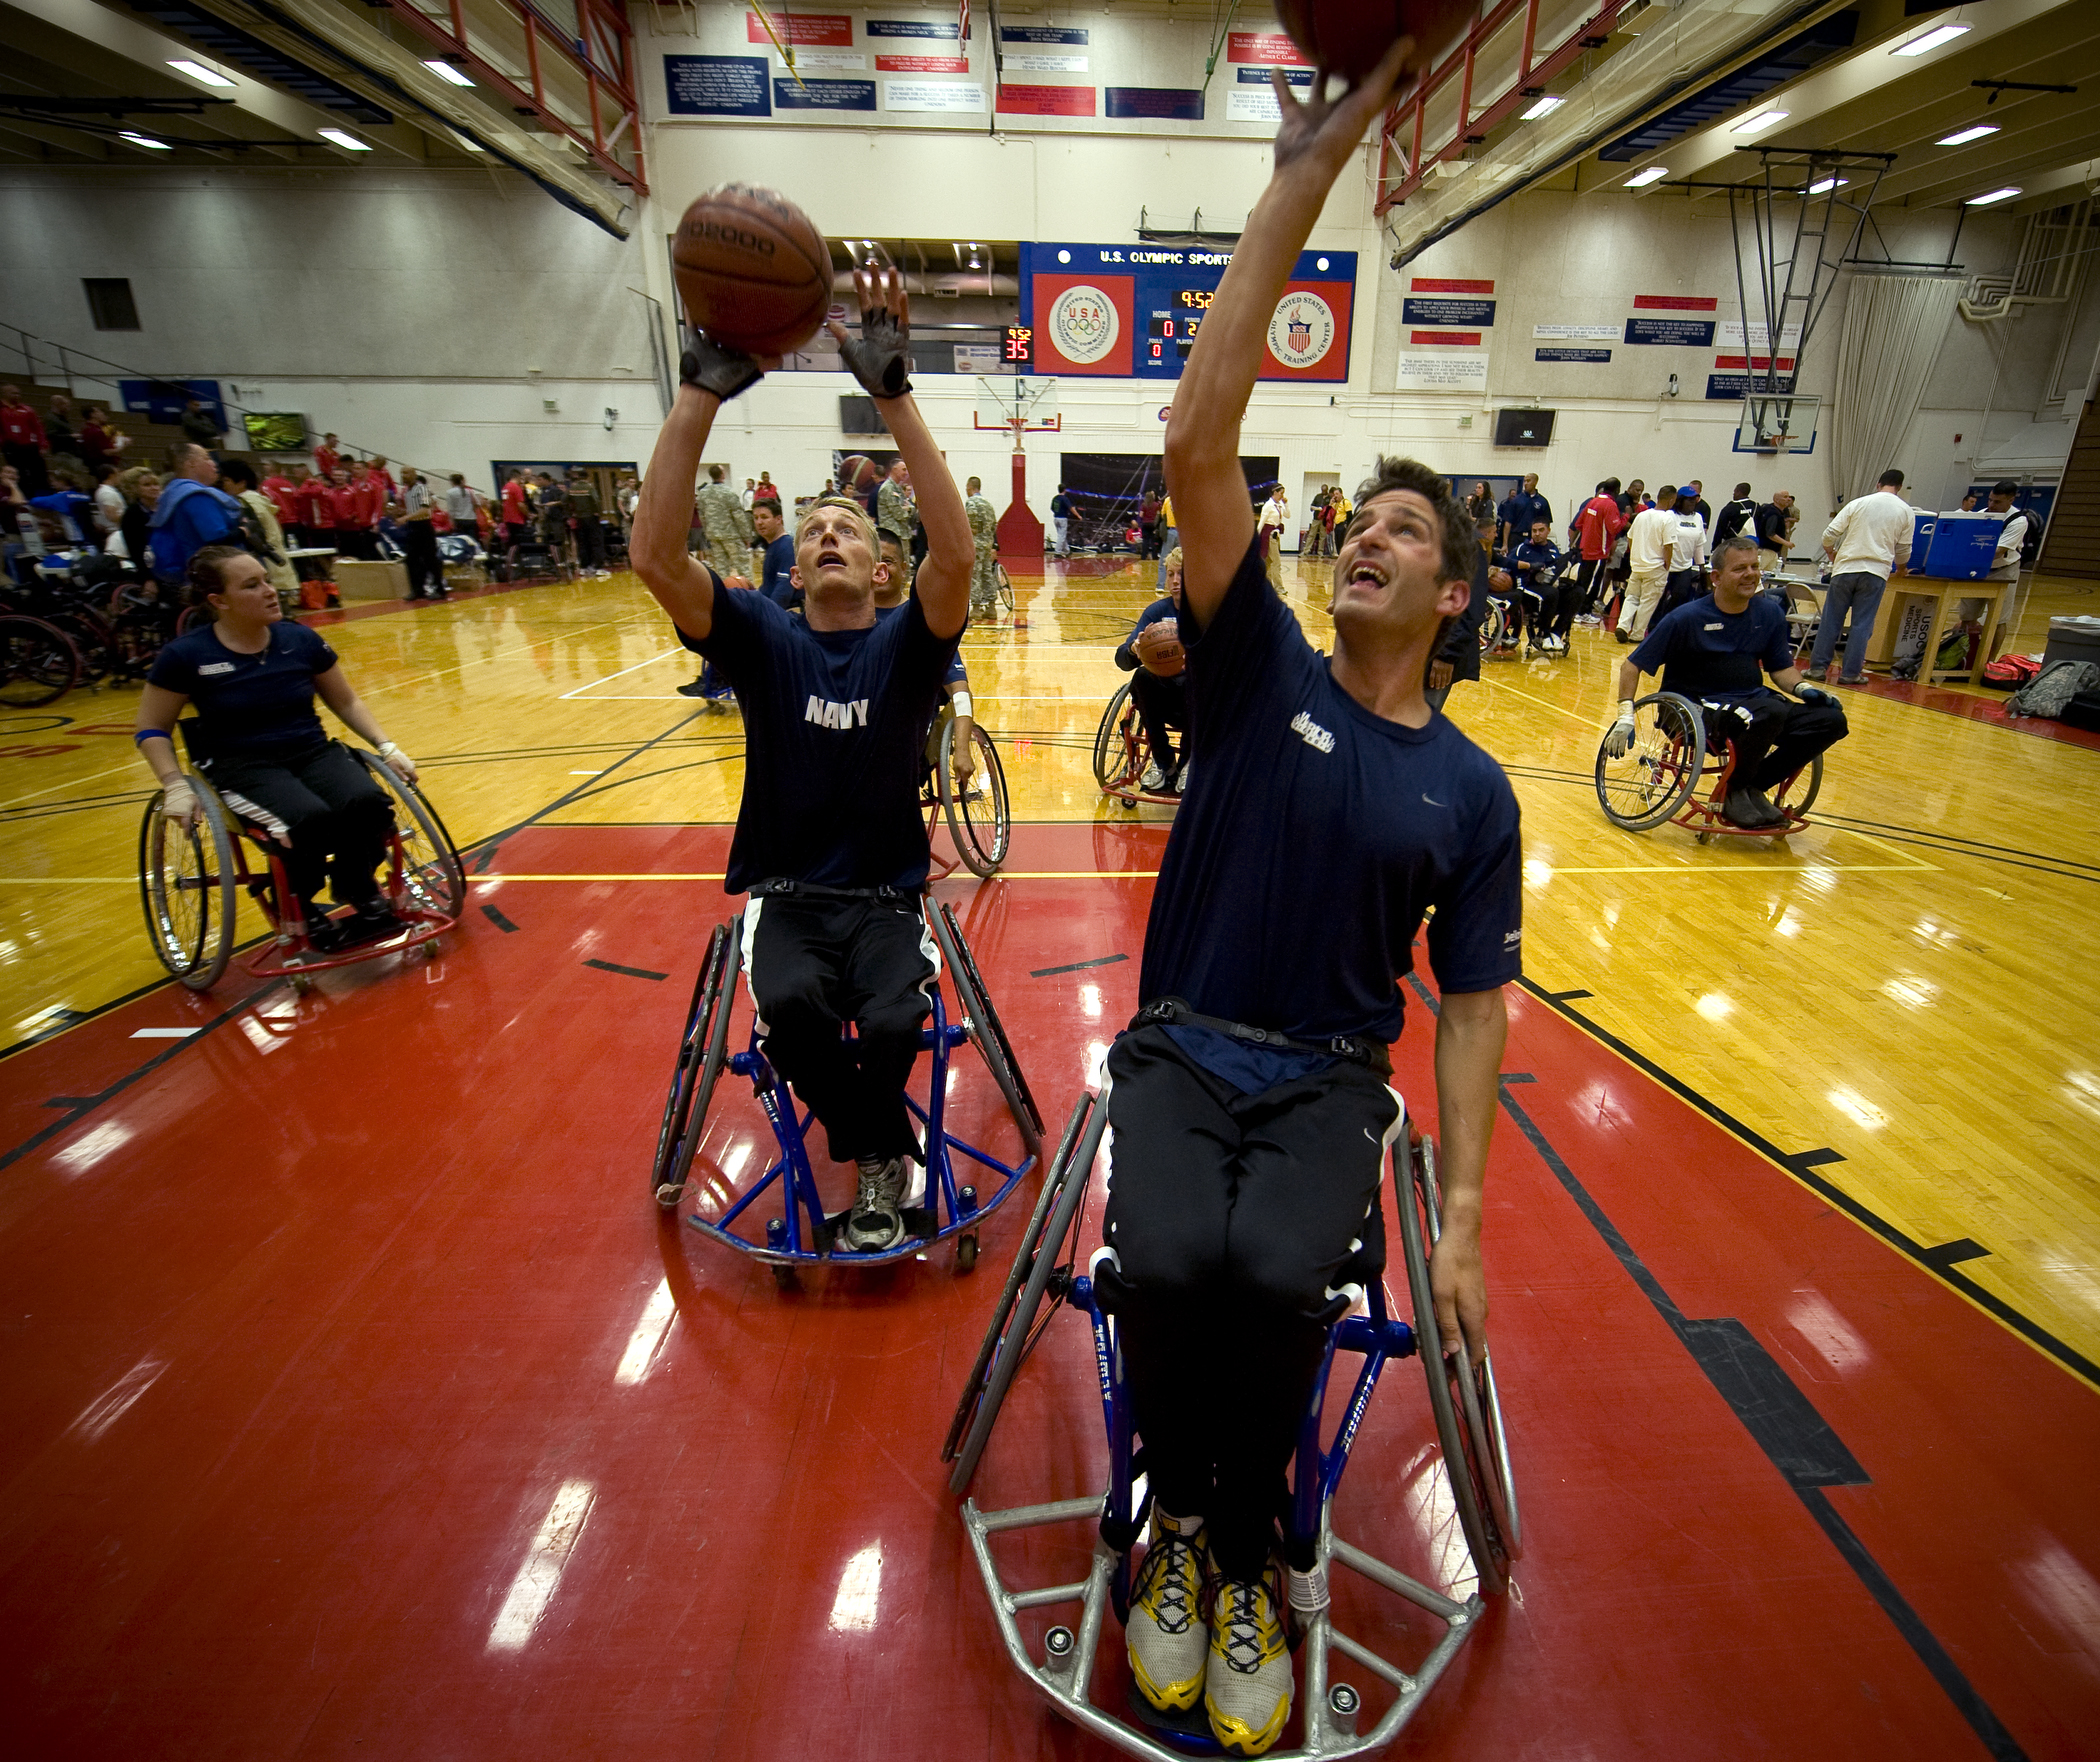 File:US Navy 100511-N-6932B-495 Navy team members warm up for a